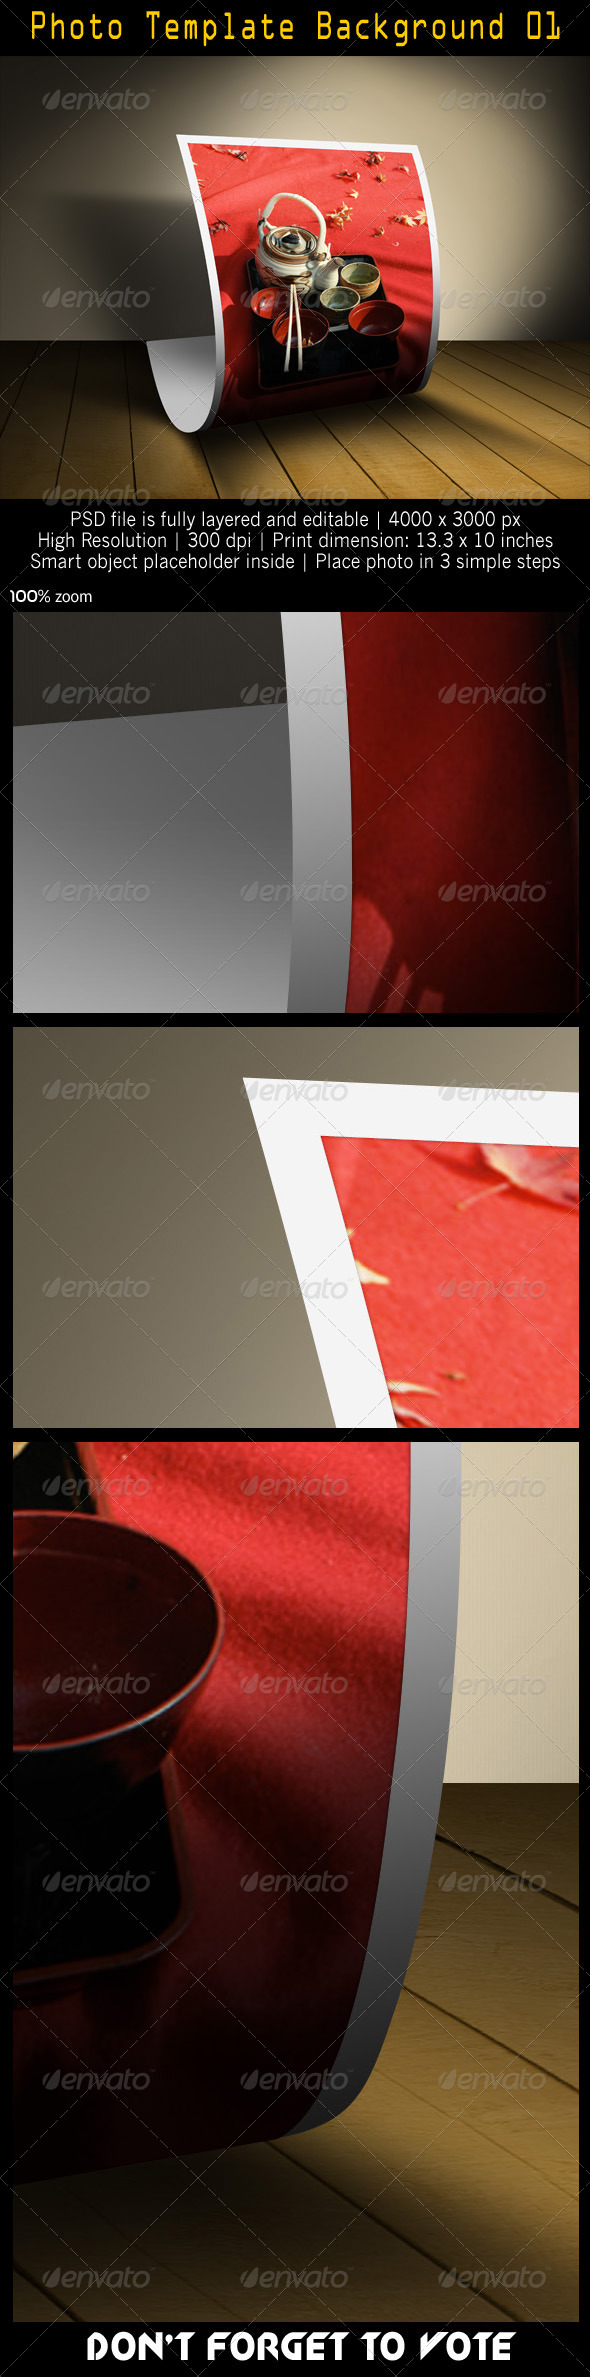 Photo Template Background 01 - Artistic Photo Templates